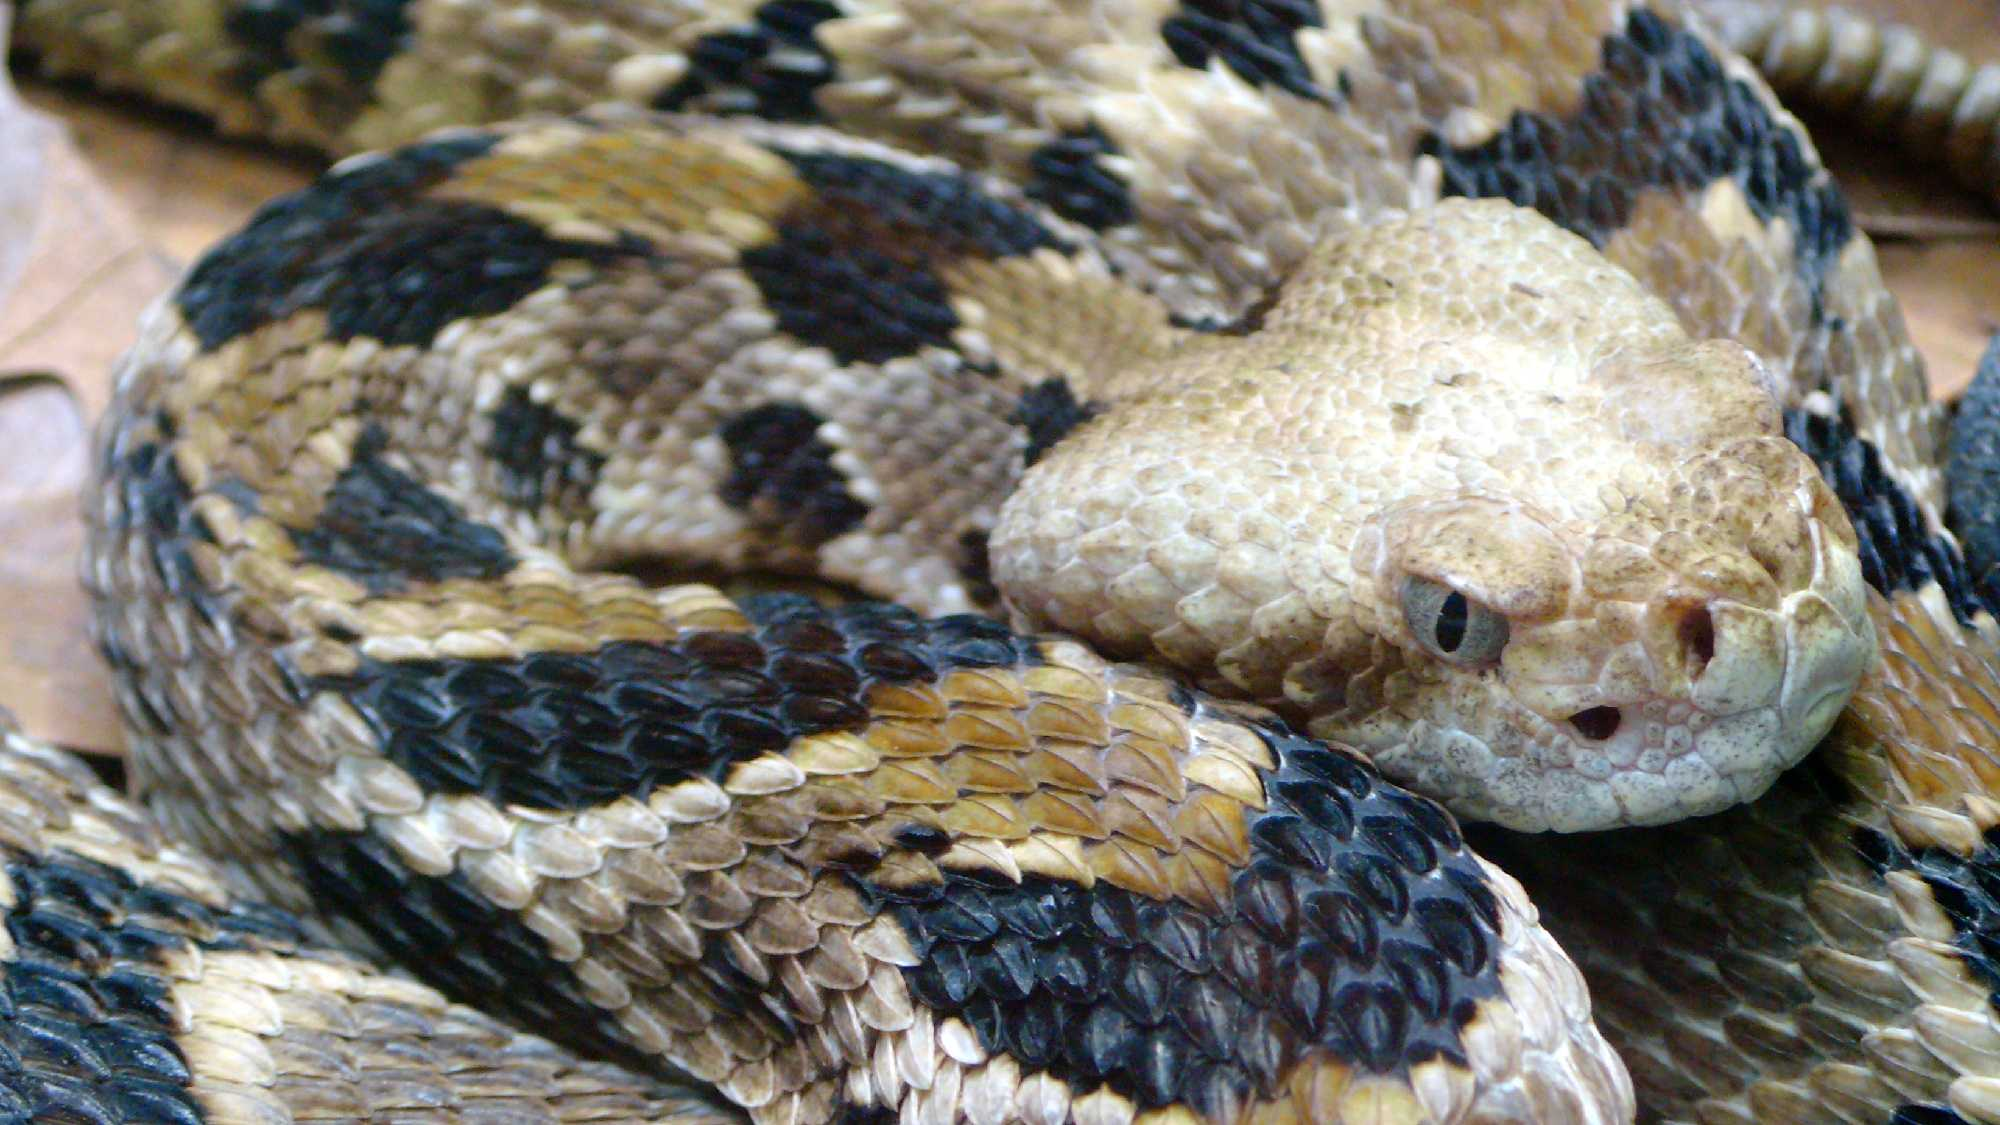 Timber rattlesnake, (Crotalus horridus)